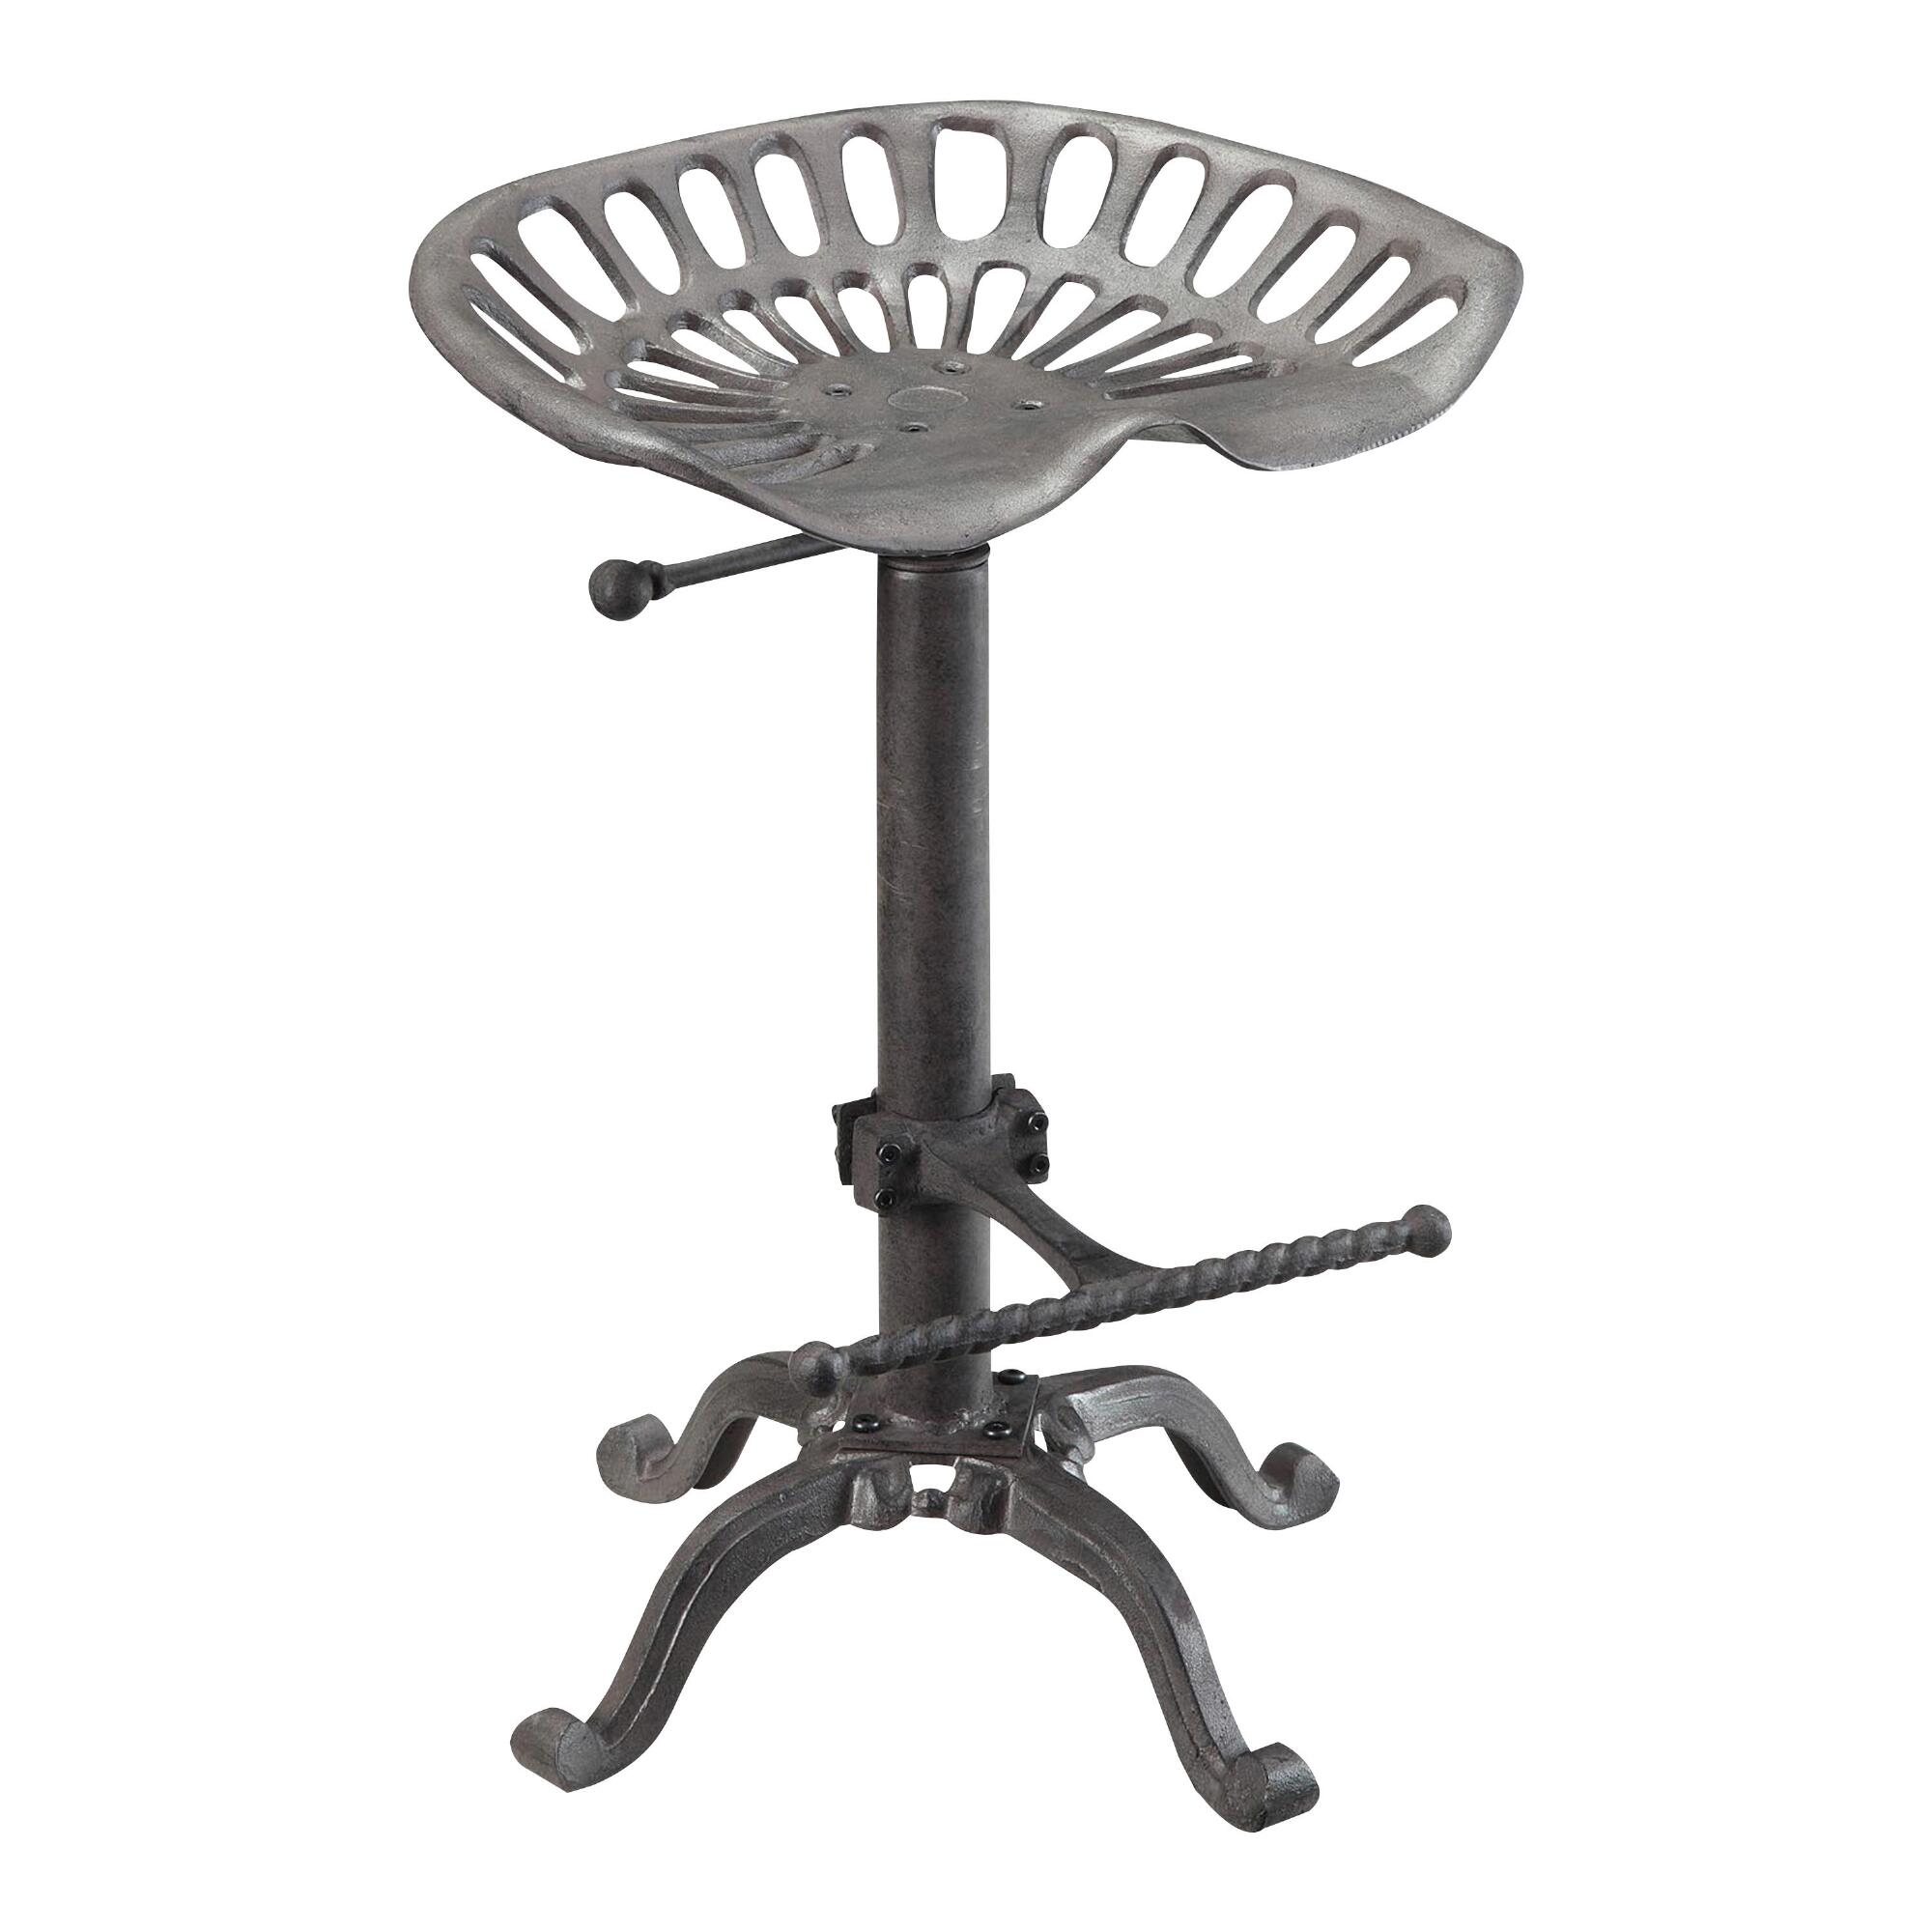 Cast Iron and Metal Mabry Adjustable Tractor Seat Stool by World Market